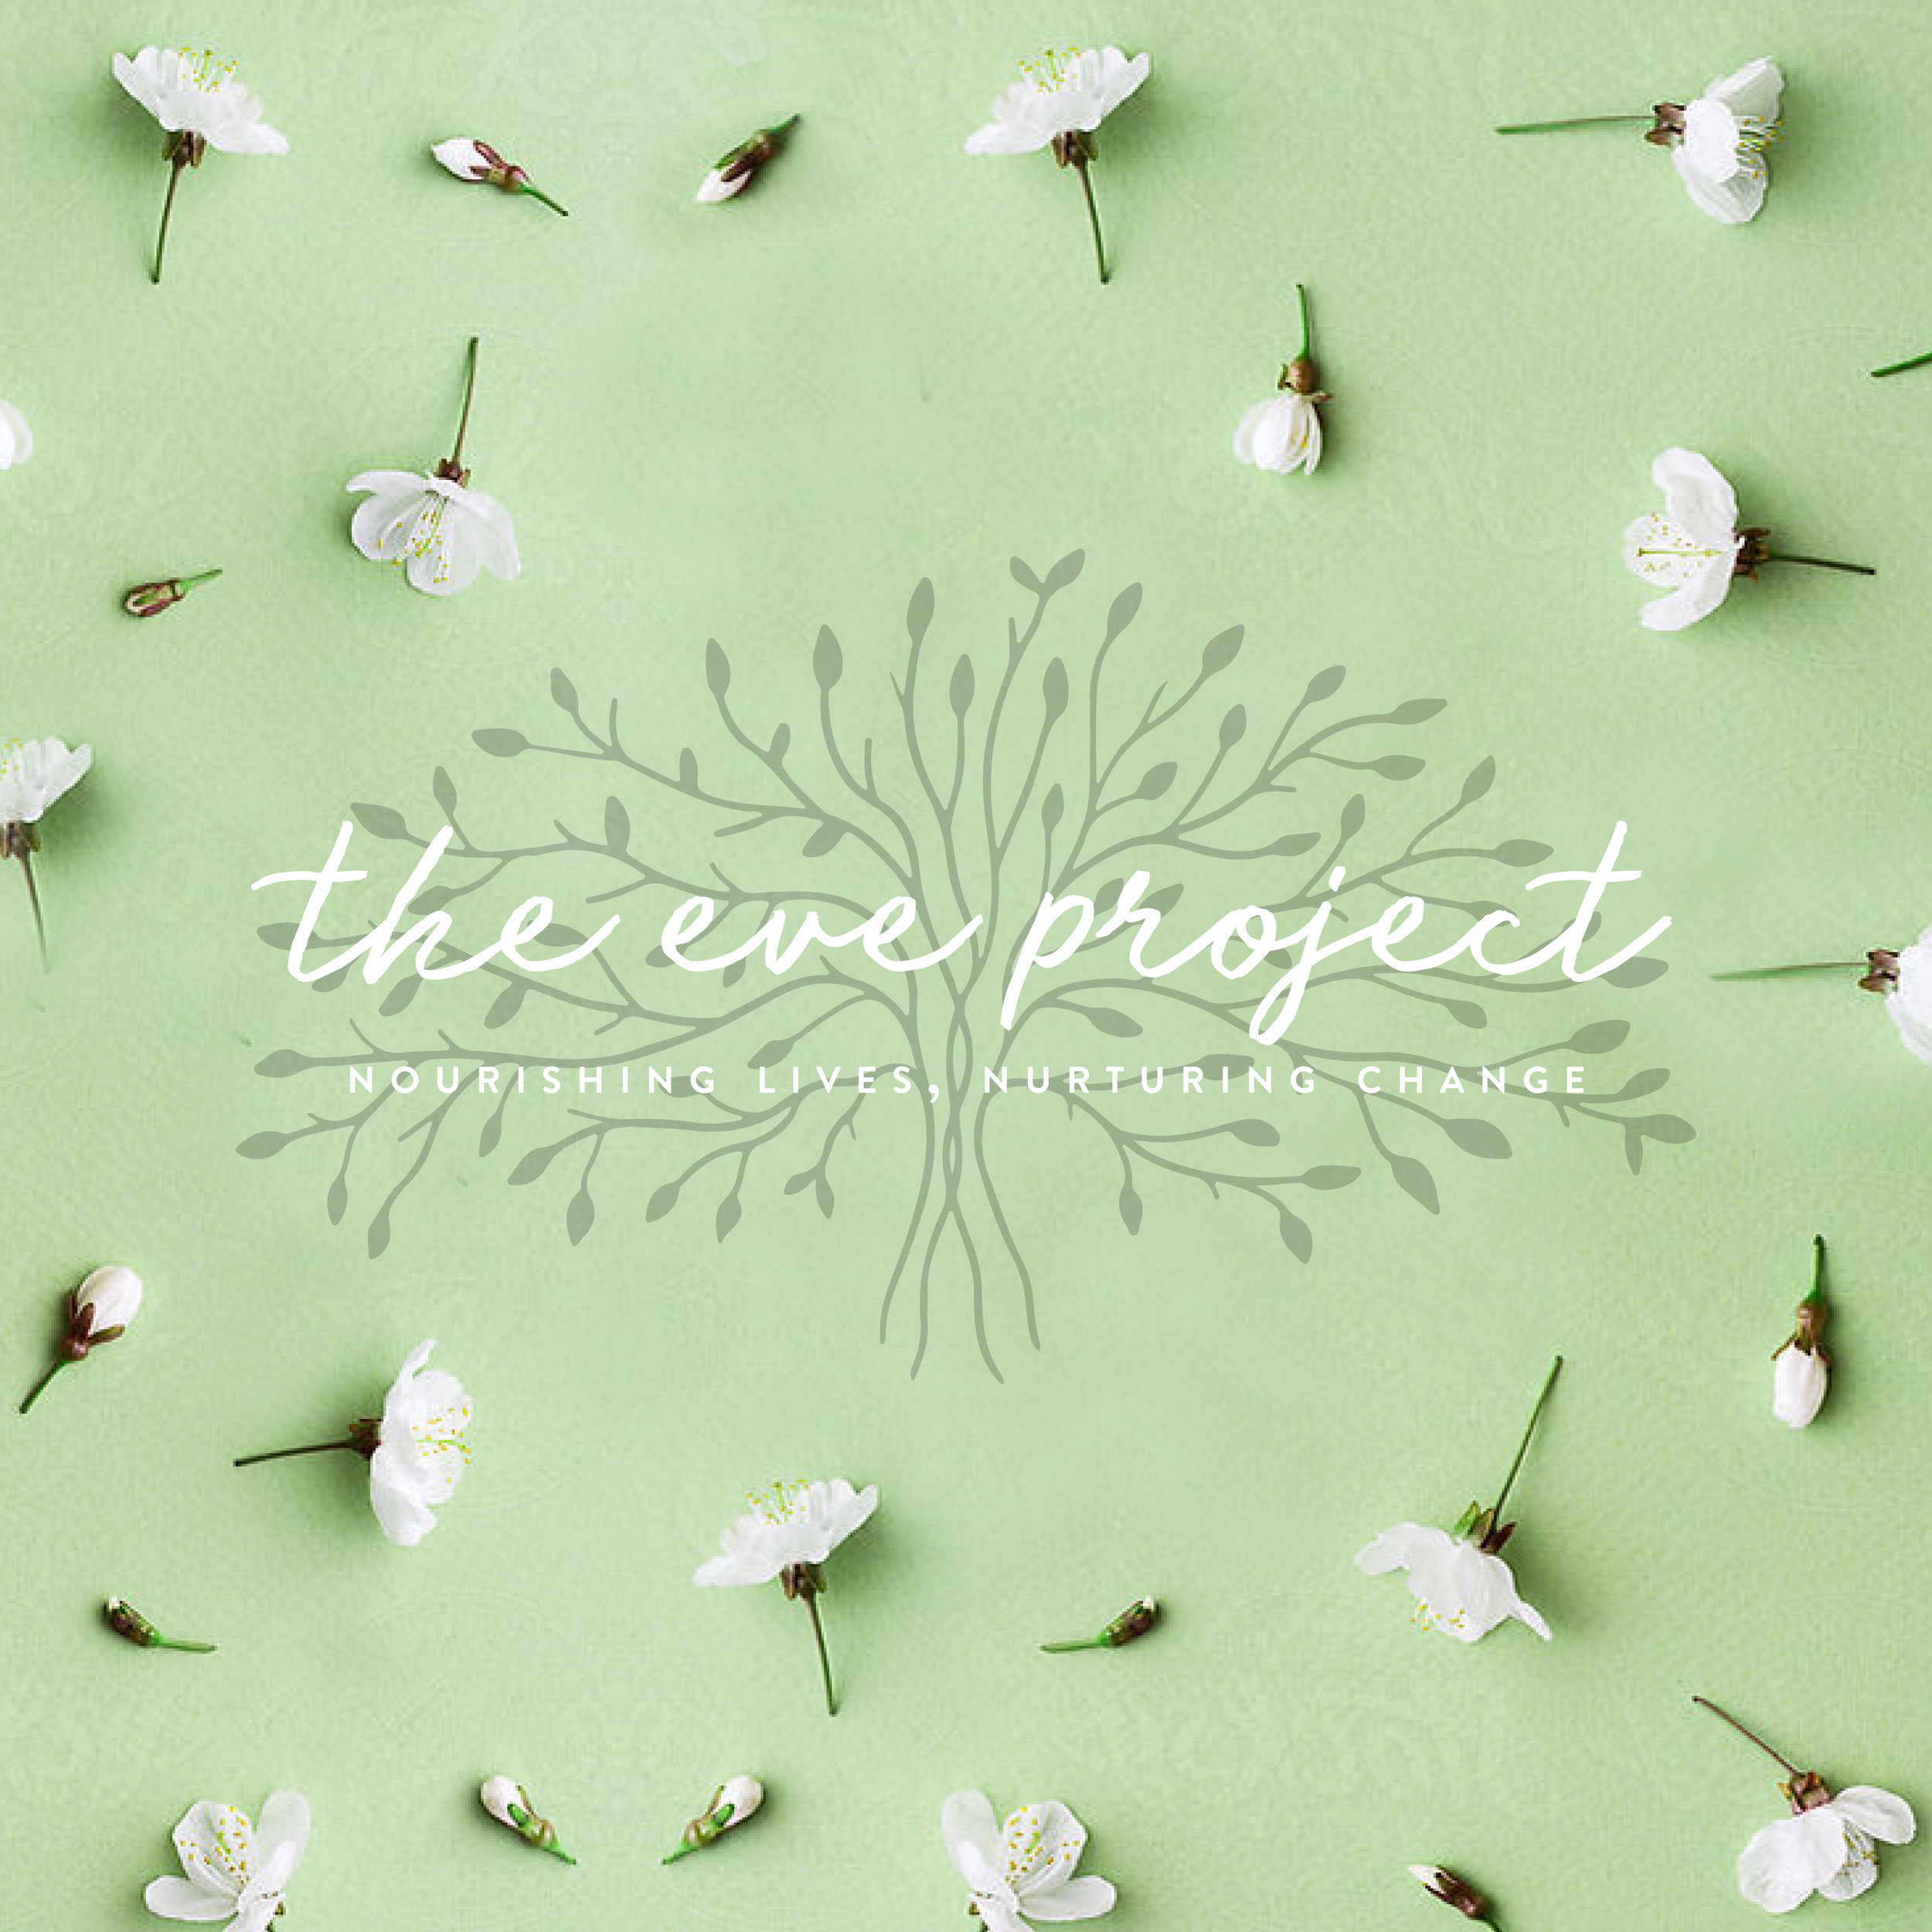 The eve project logo with green tree background